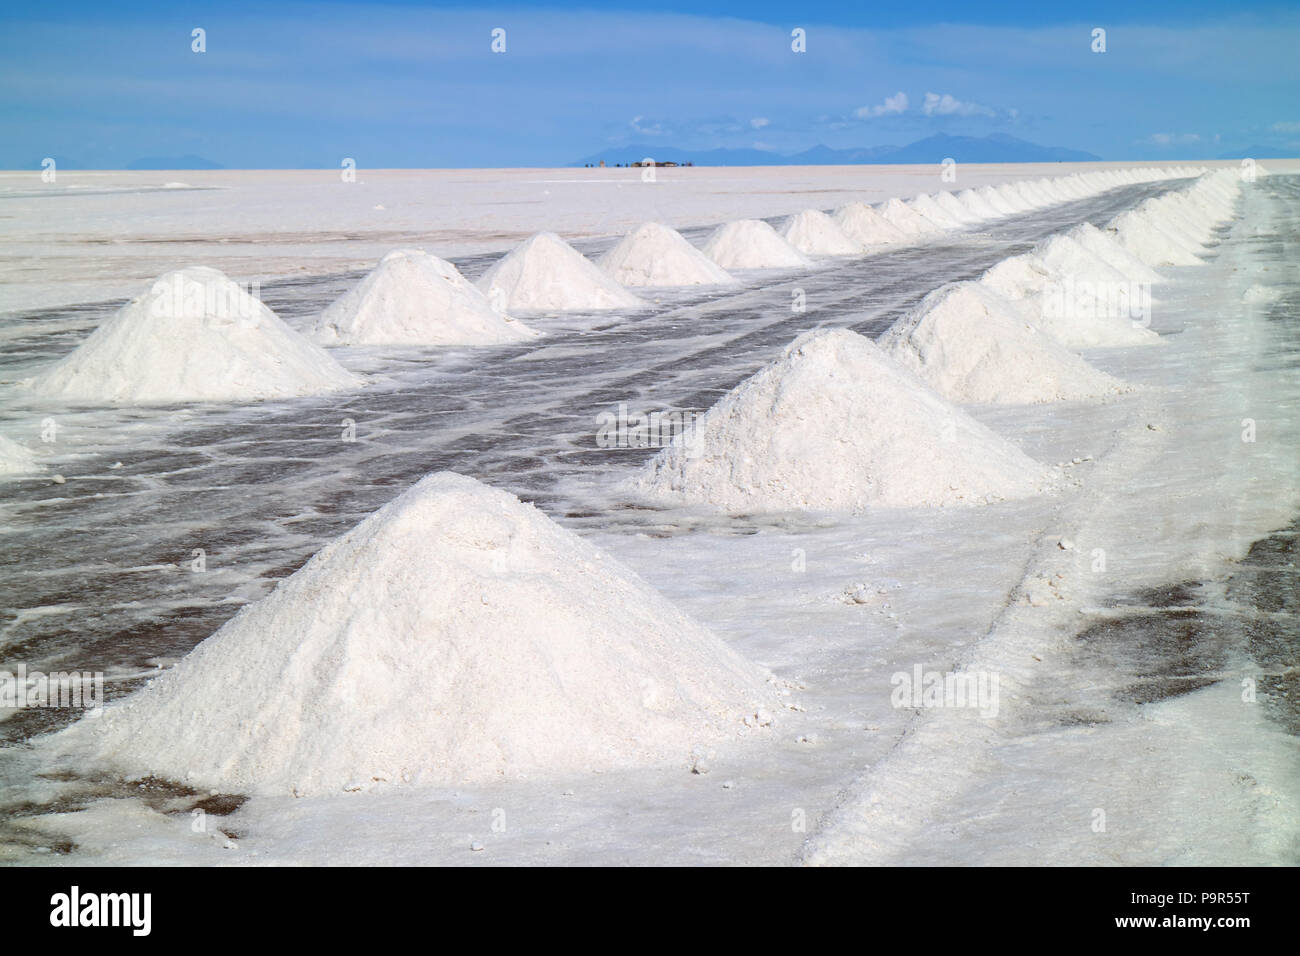 Piles of the drying salt on the Uyuni salt flats or Salar de Uyuni, Potosi, Bolivia, South America - Stock Image